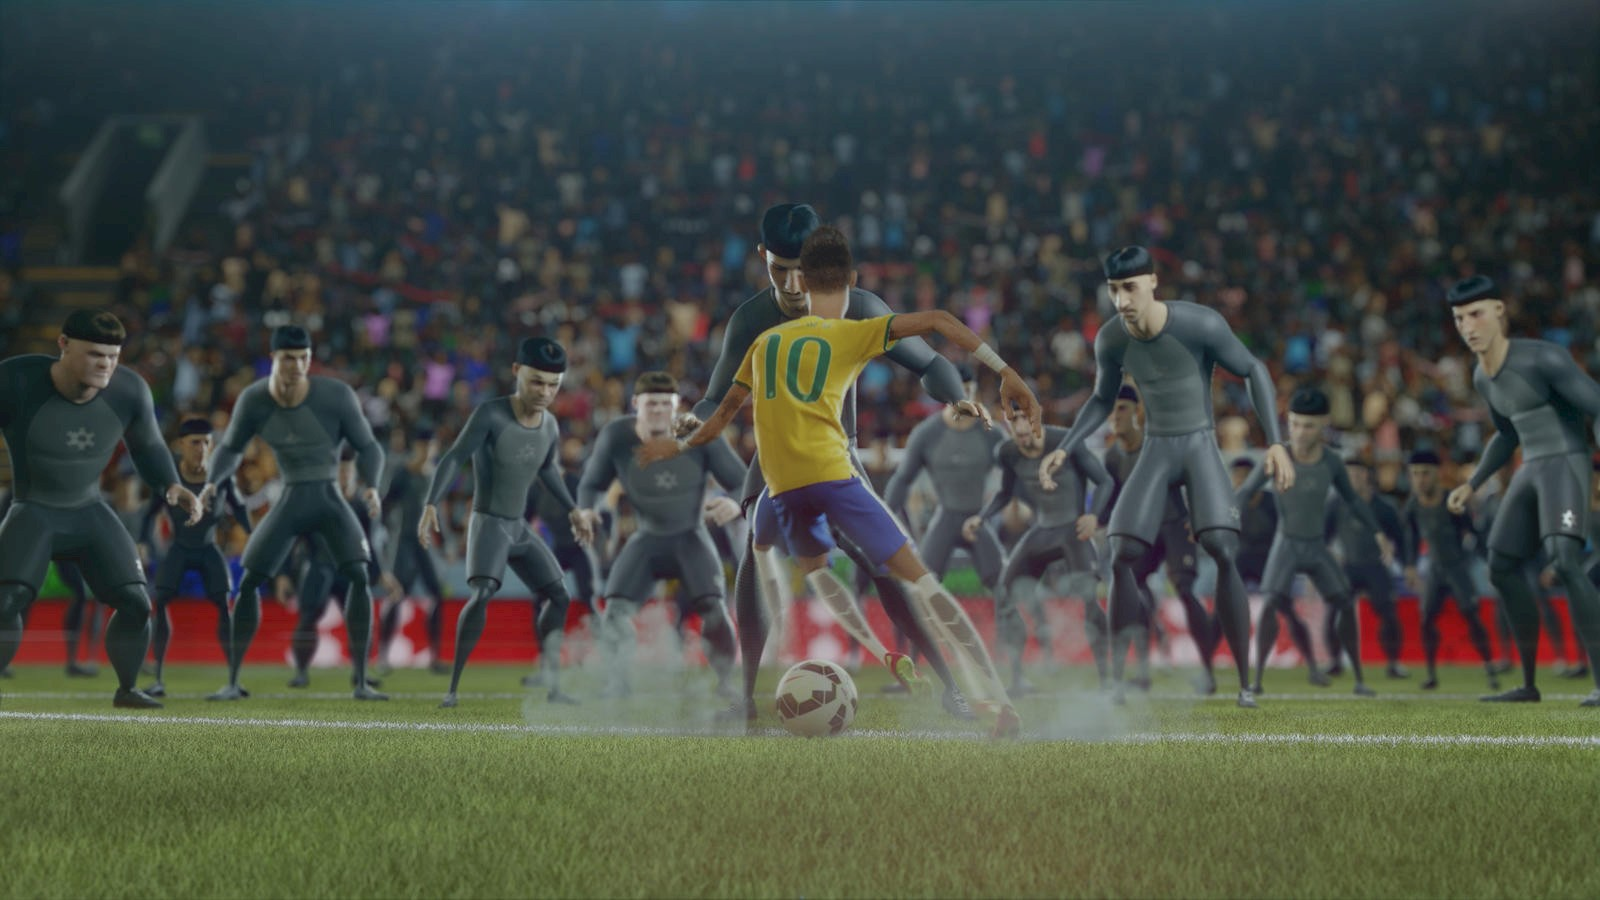 Still from The Last Game, animation, 5min. Created by Wieden+Kennedy, as a part of Nike's Risk Everything campaign, 2014